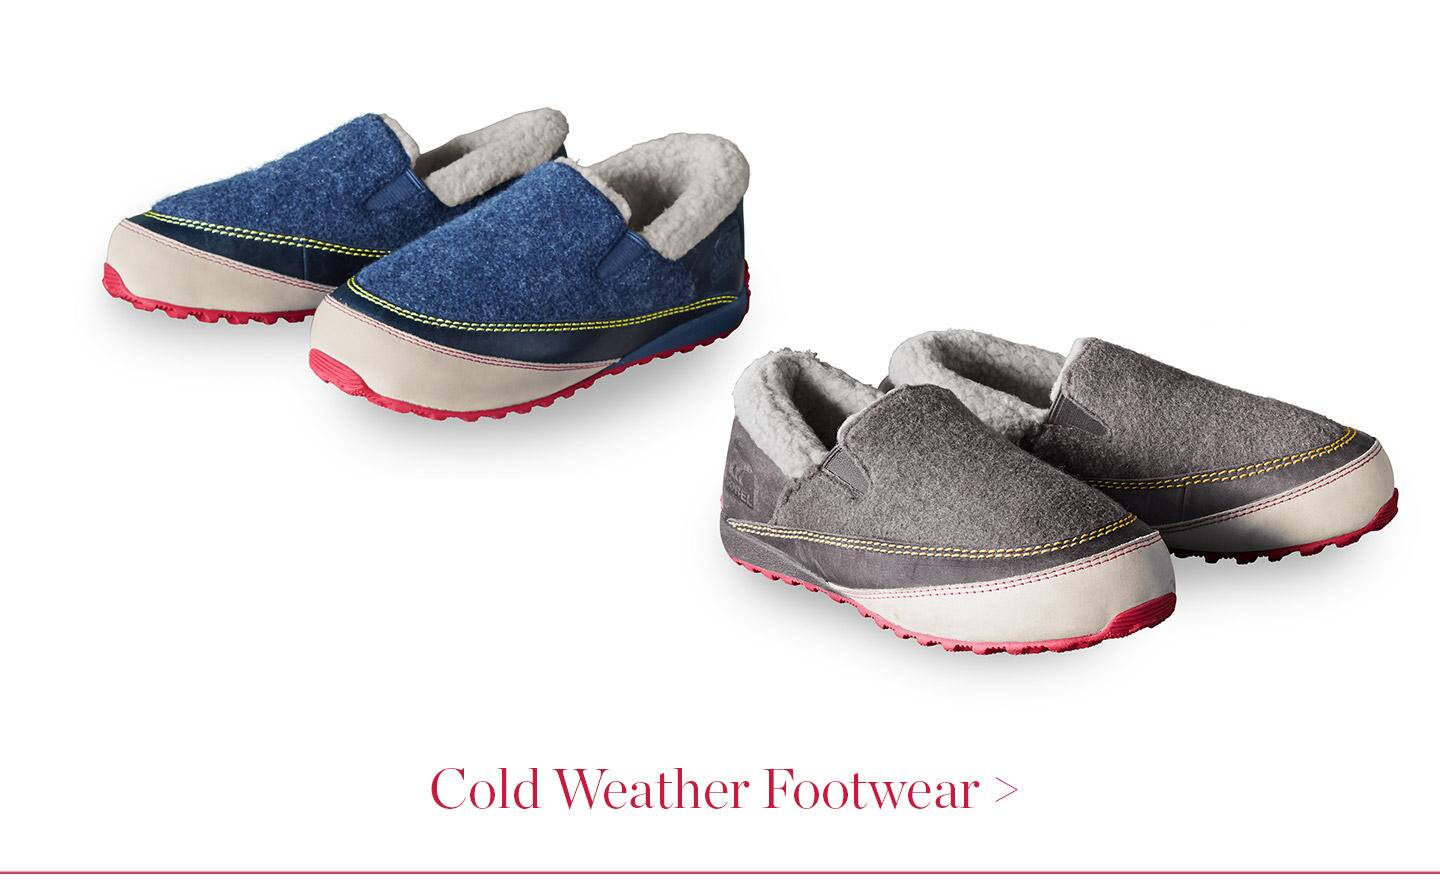 Cold Weather Footwear